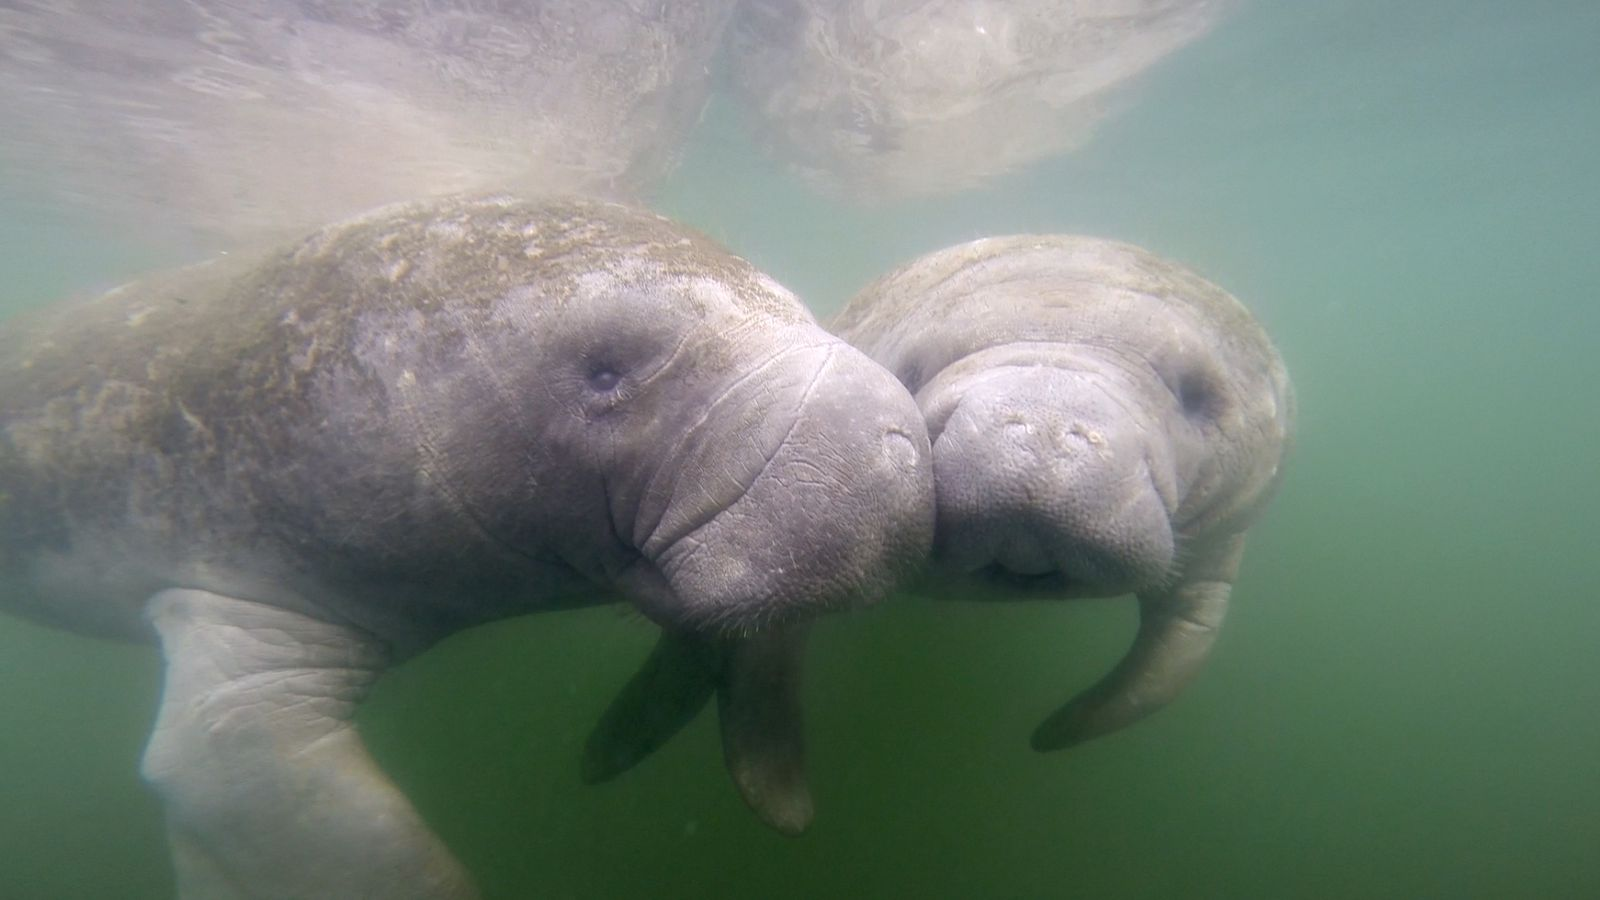 Florida has seen an alarming rise in manatee deaths in 2021.